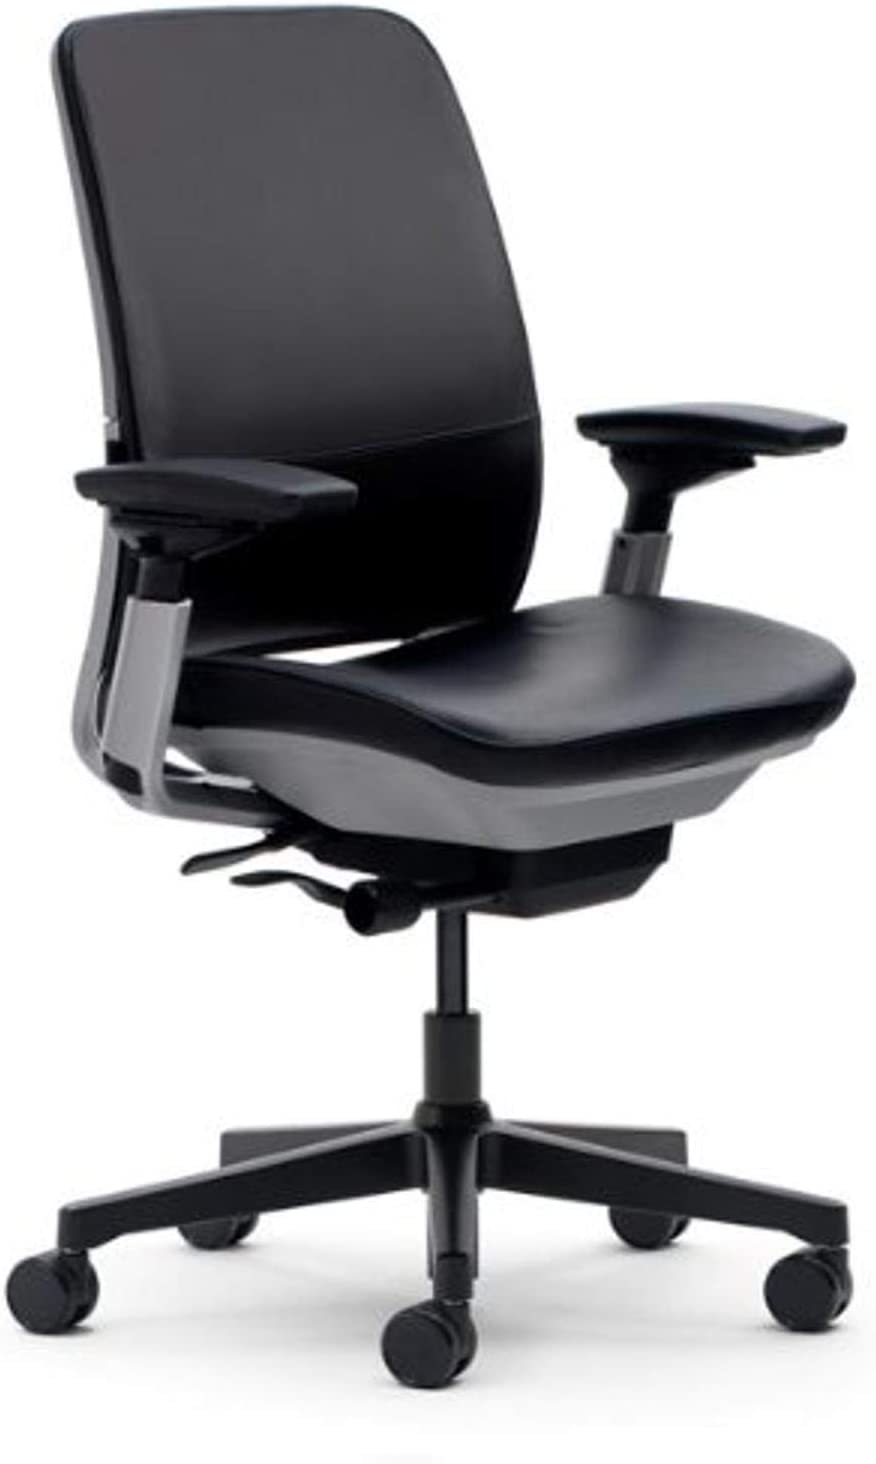 Amazon.com: Steelcase Amia Black Leather Chair: Kitchen & Dining